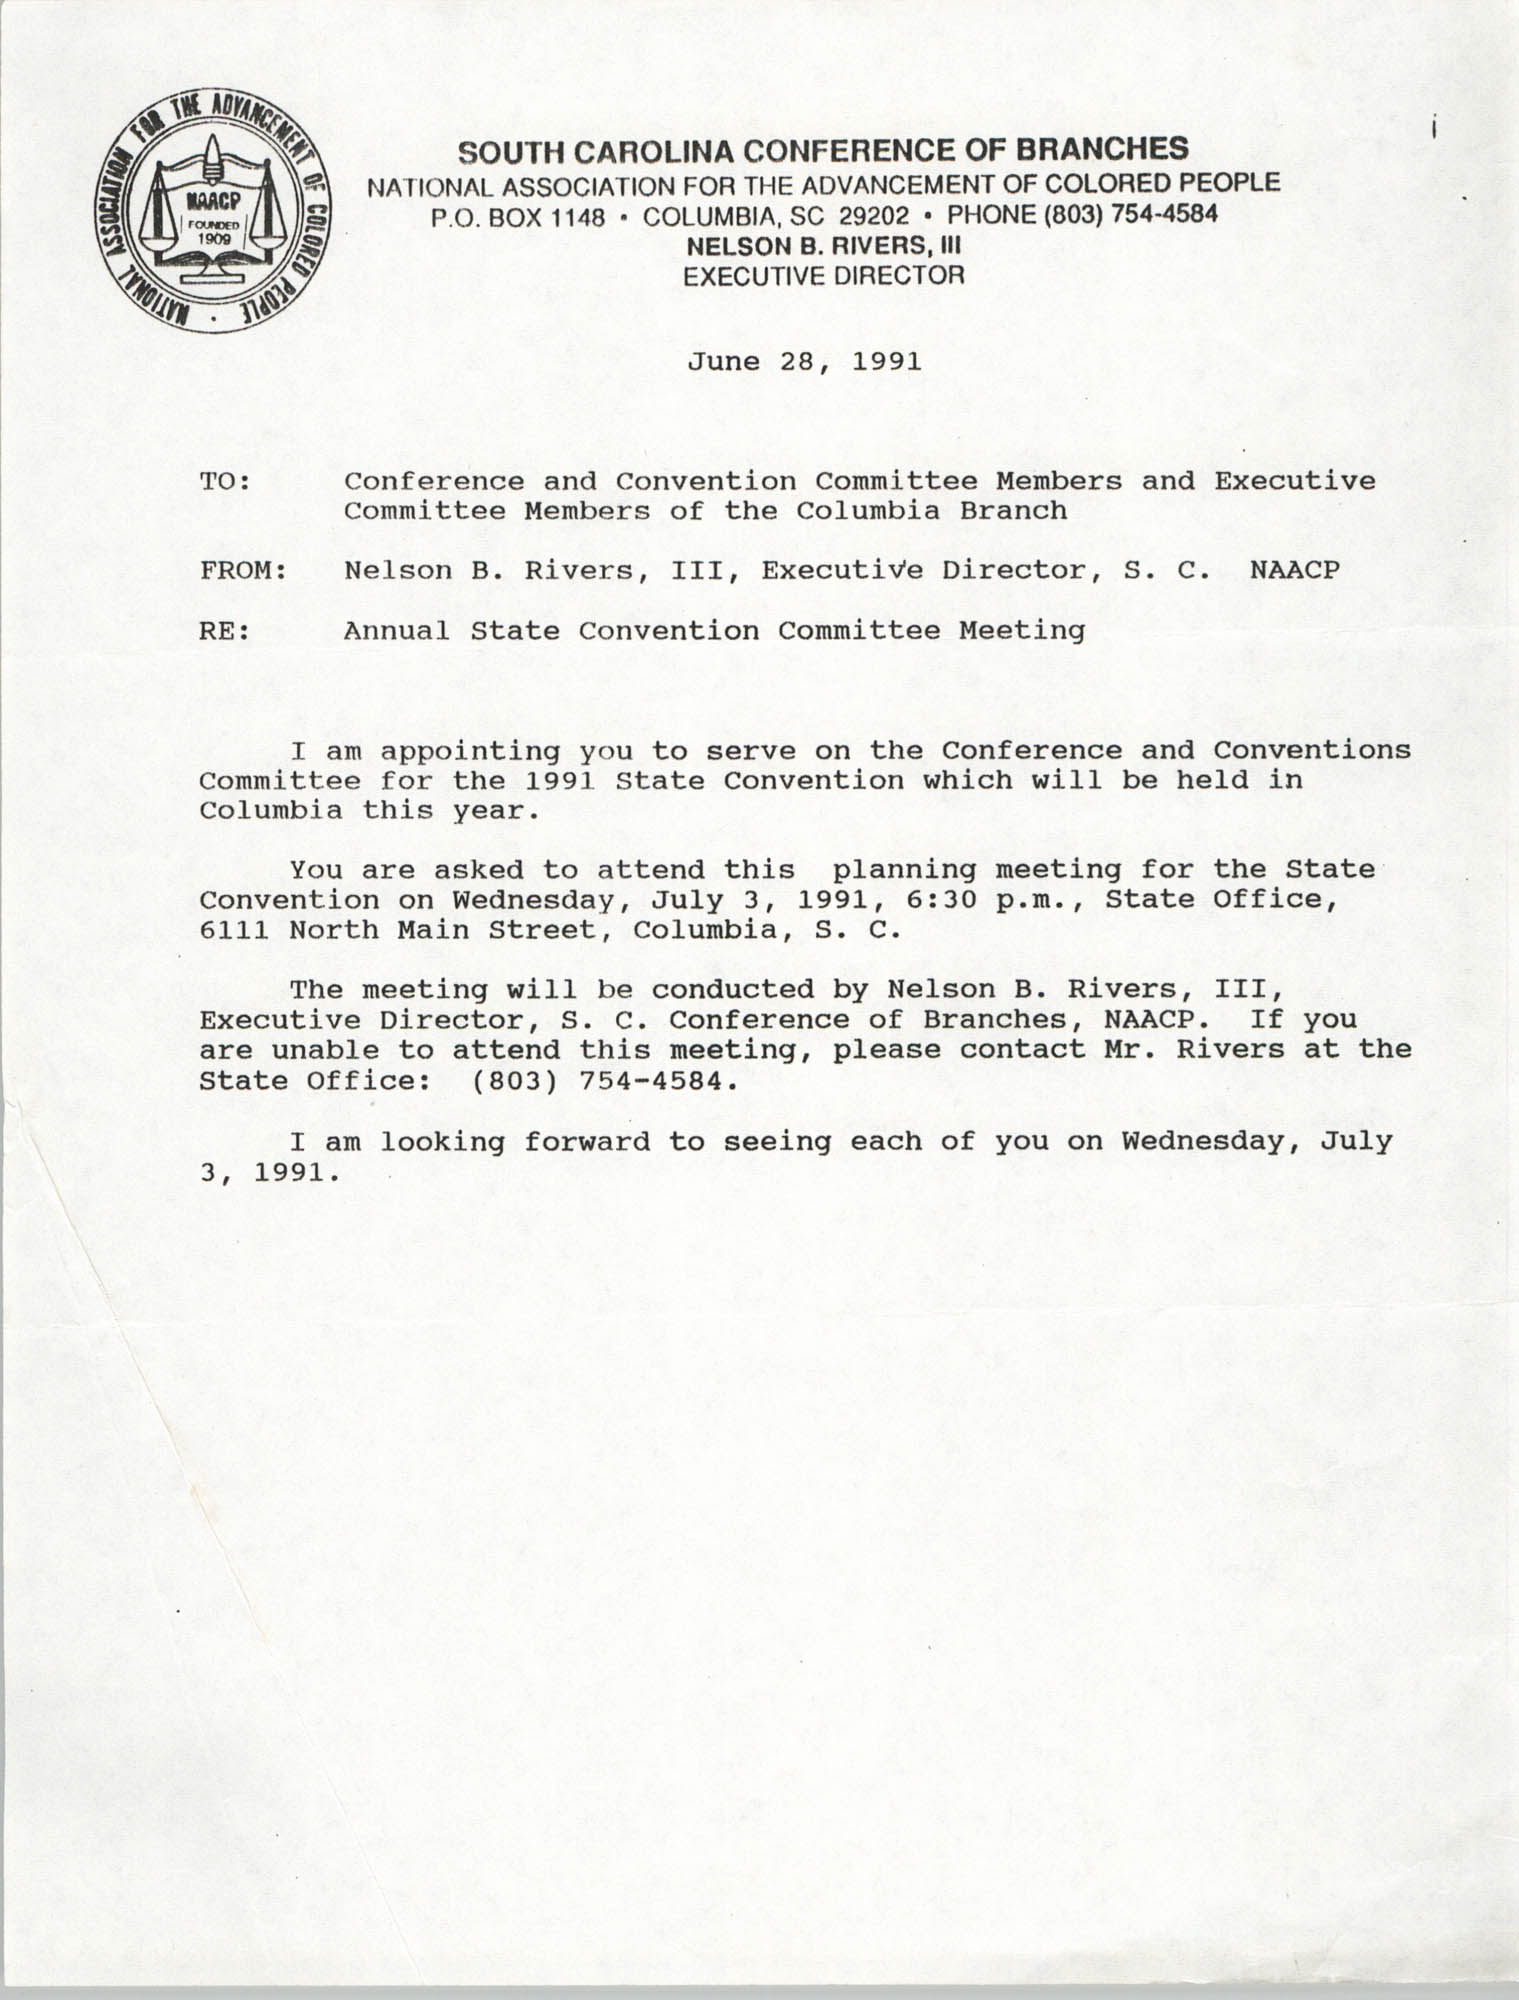 South Carolina Conference of Branches of the NAACP Memorandum, June 28, 1991